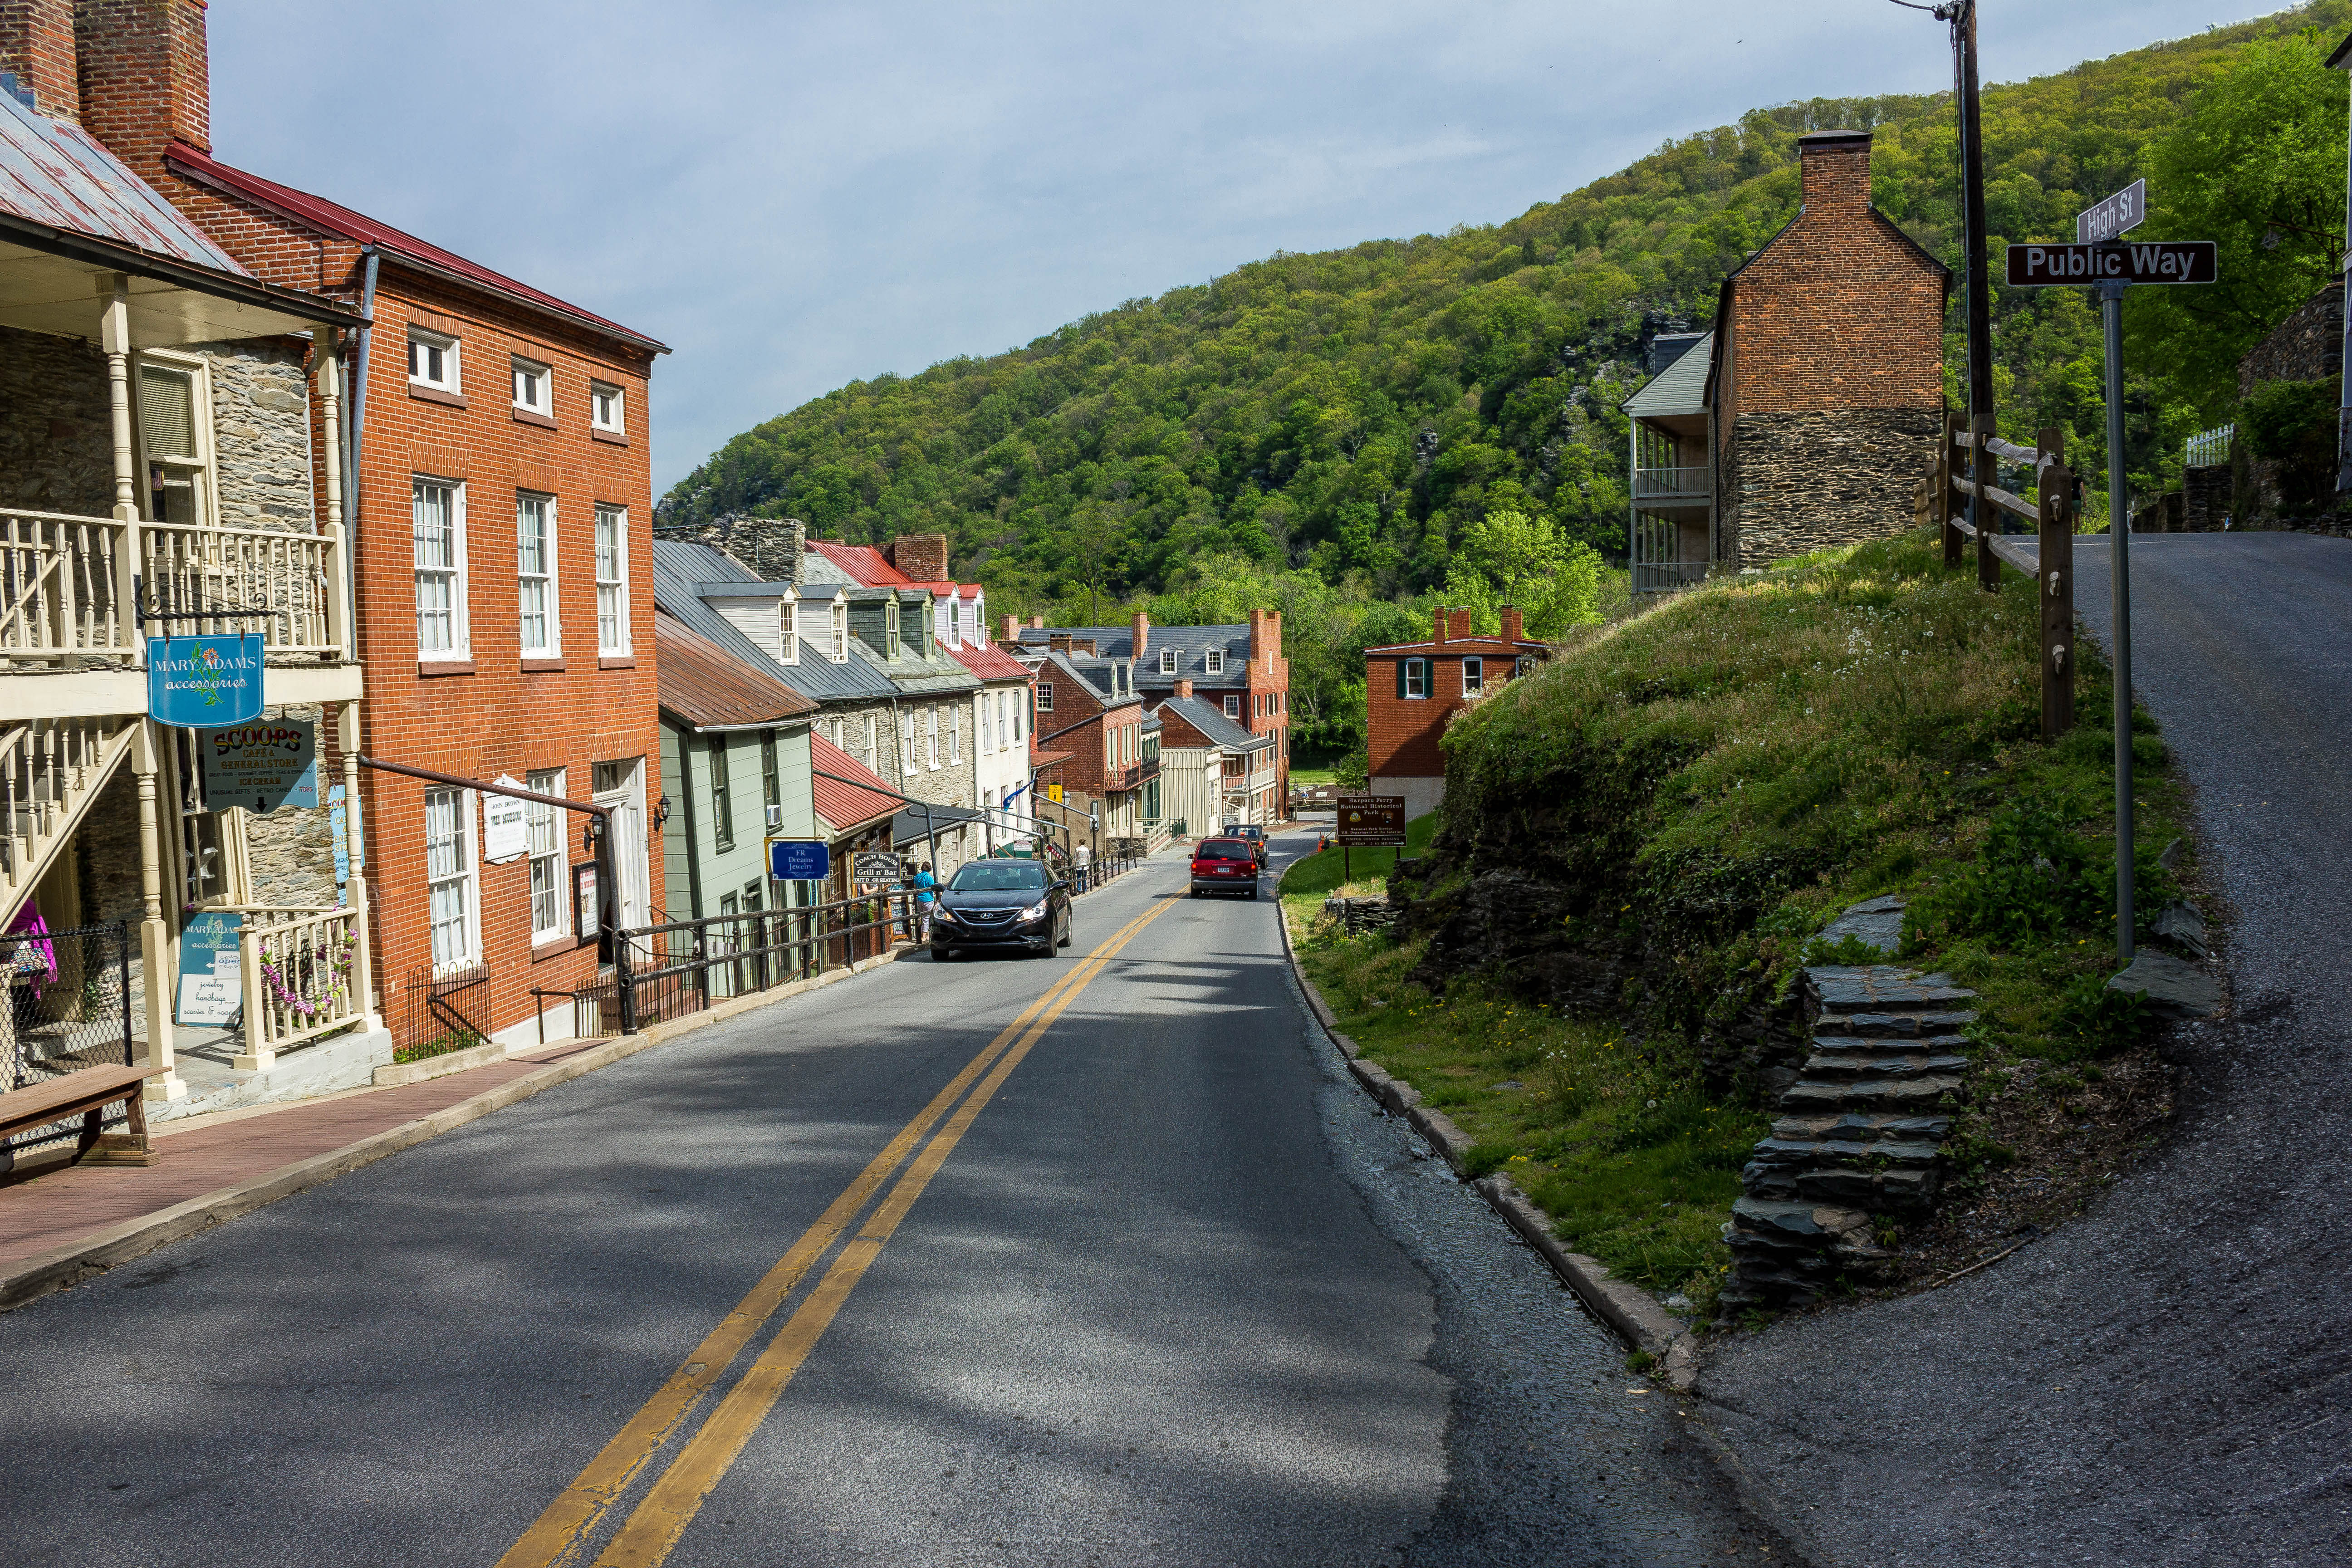 Downhill Cityscape View At Harper S Ferry West Virginia Image Free Stock Photo Public